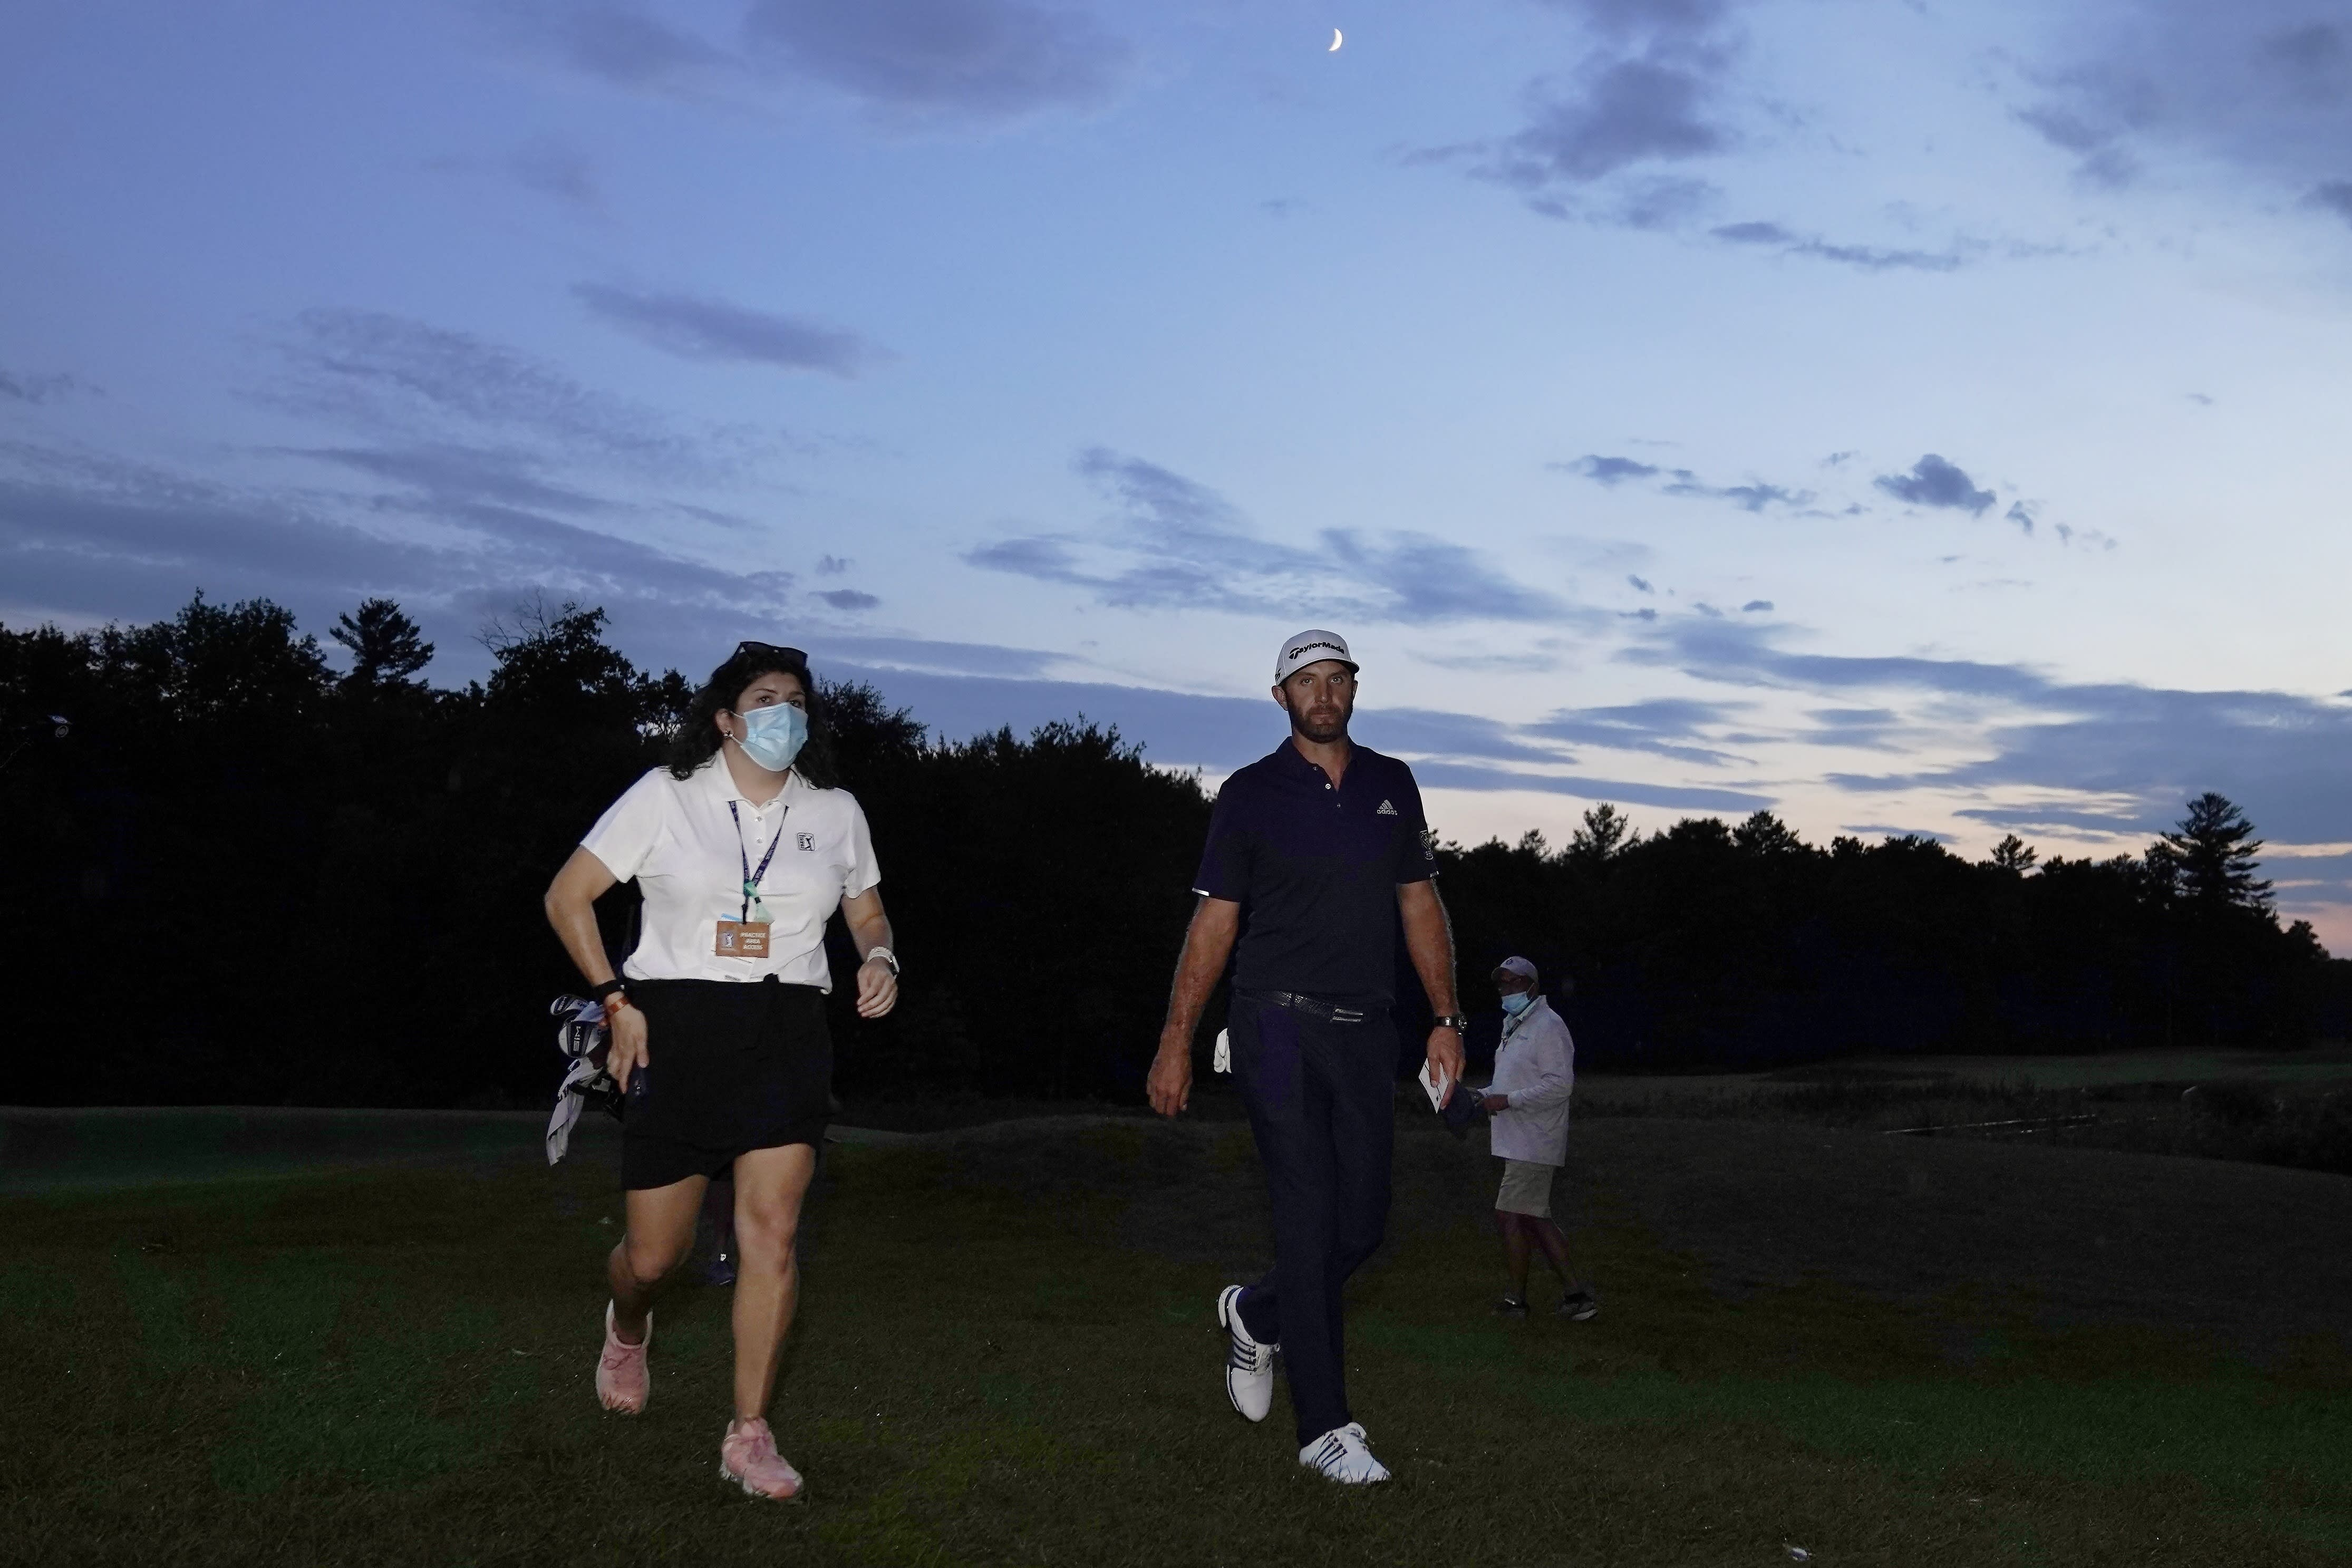 Dustin Johnson walks off the 18th green after finishing the final round of the Northern Trust golf tournament at TPC Boston, Sunday, Aug. 23, 2020, in Norton, Mass. (AP Photo/Charles Krupa)